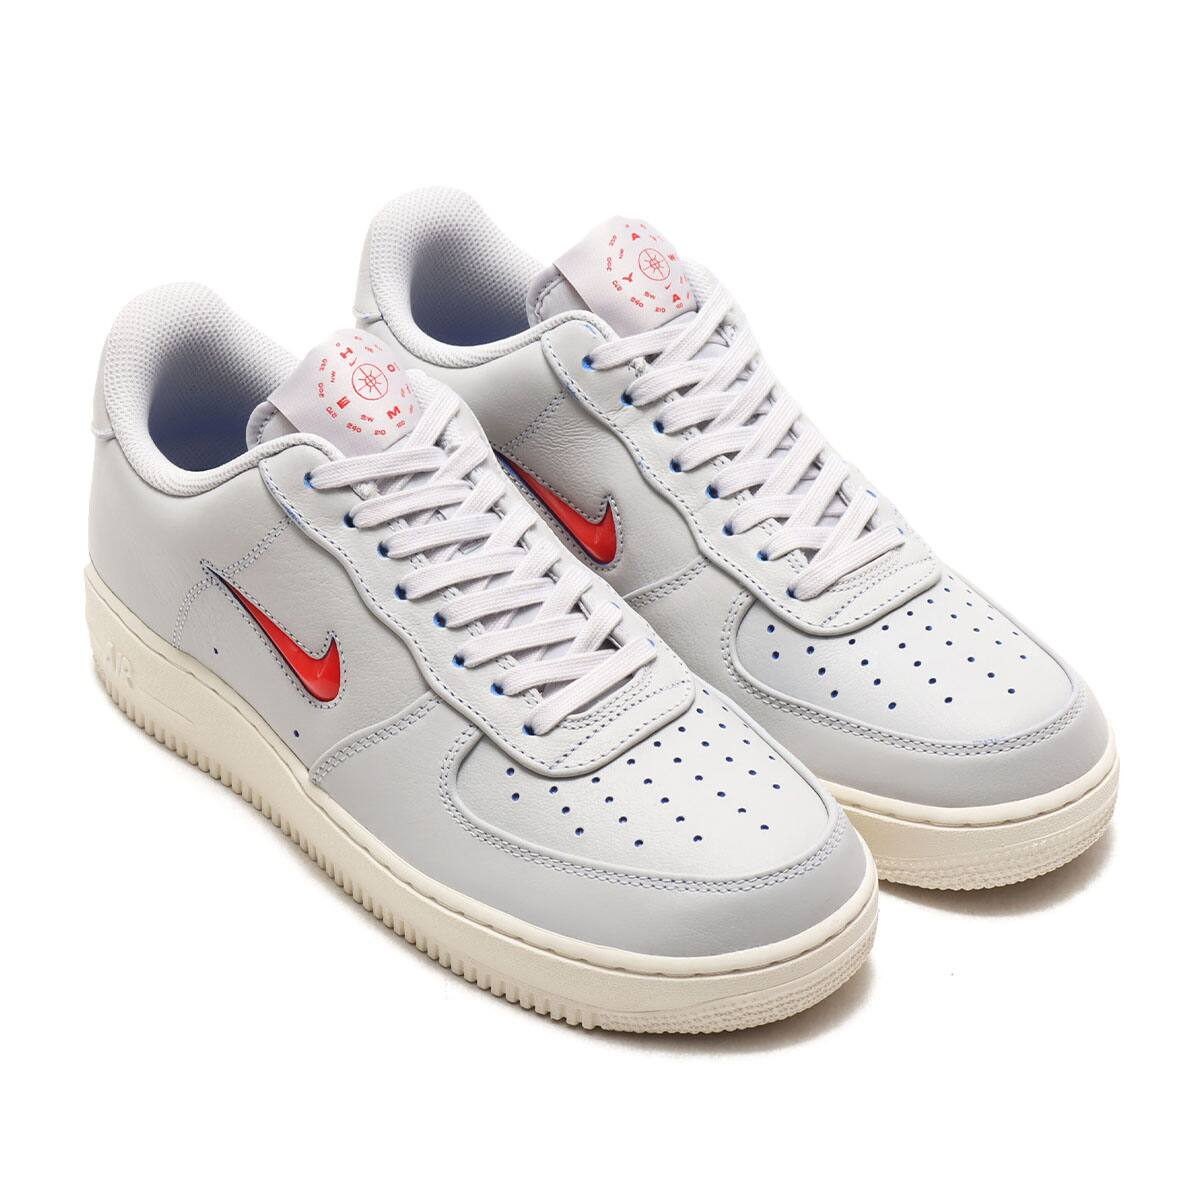 NIKE AIR FORCE 1 '07 PRM VAST GREY/CHALLENGE RED-MEGA BLUE-SAIL 20SU-S_photo_large